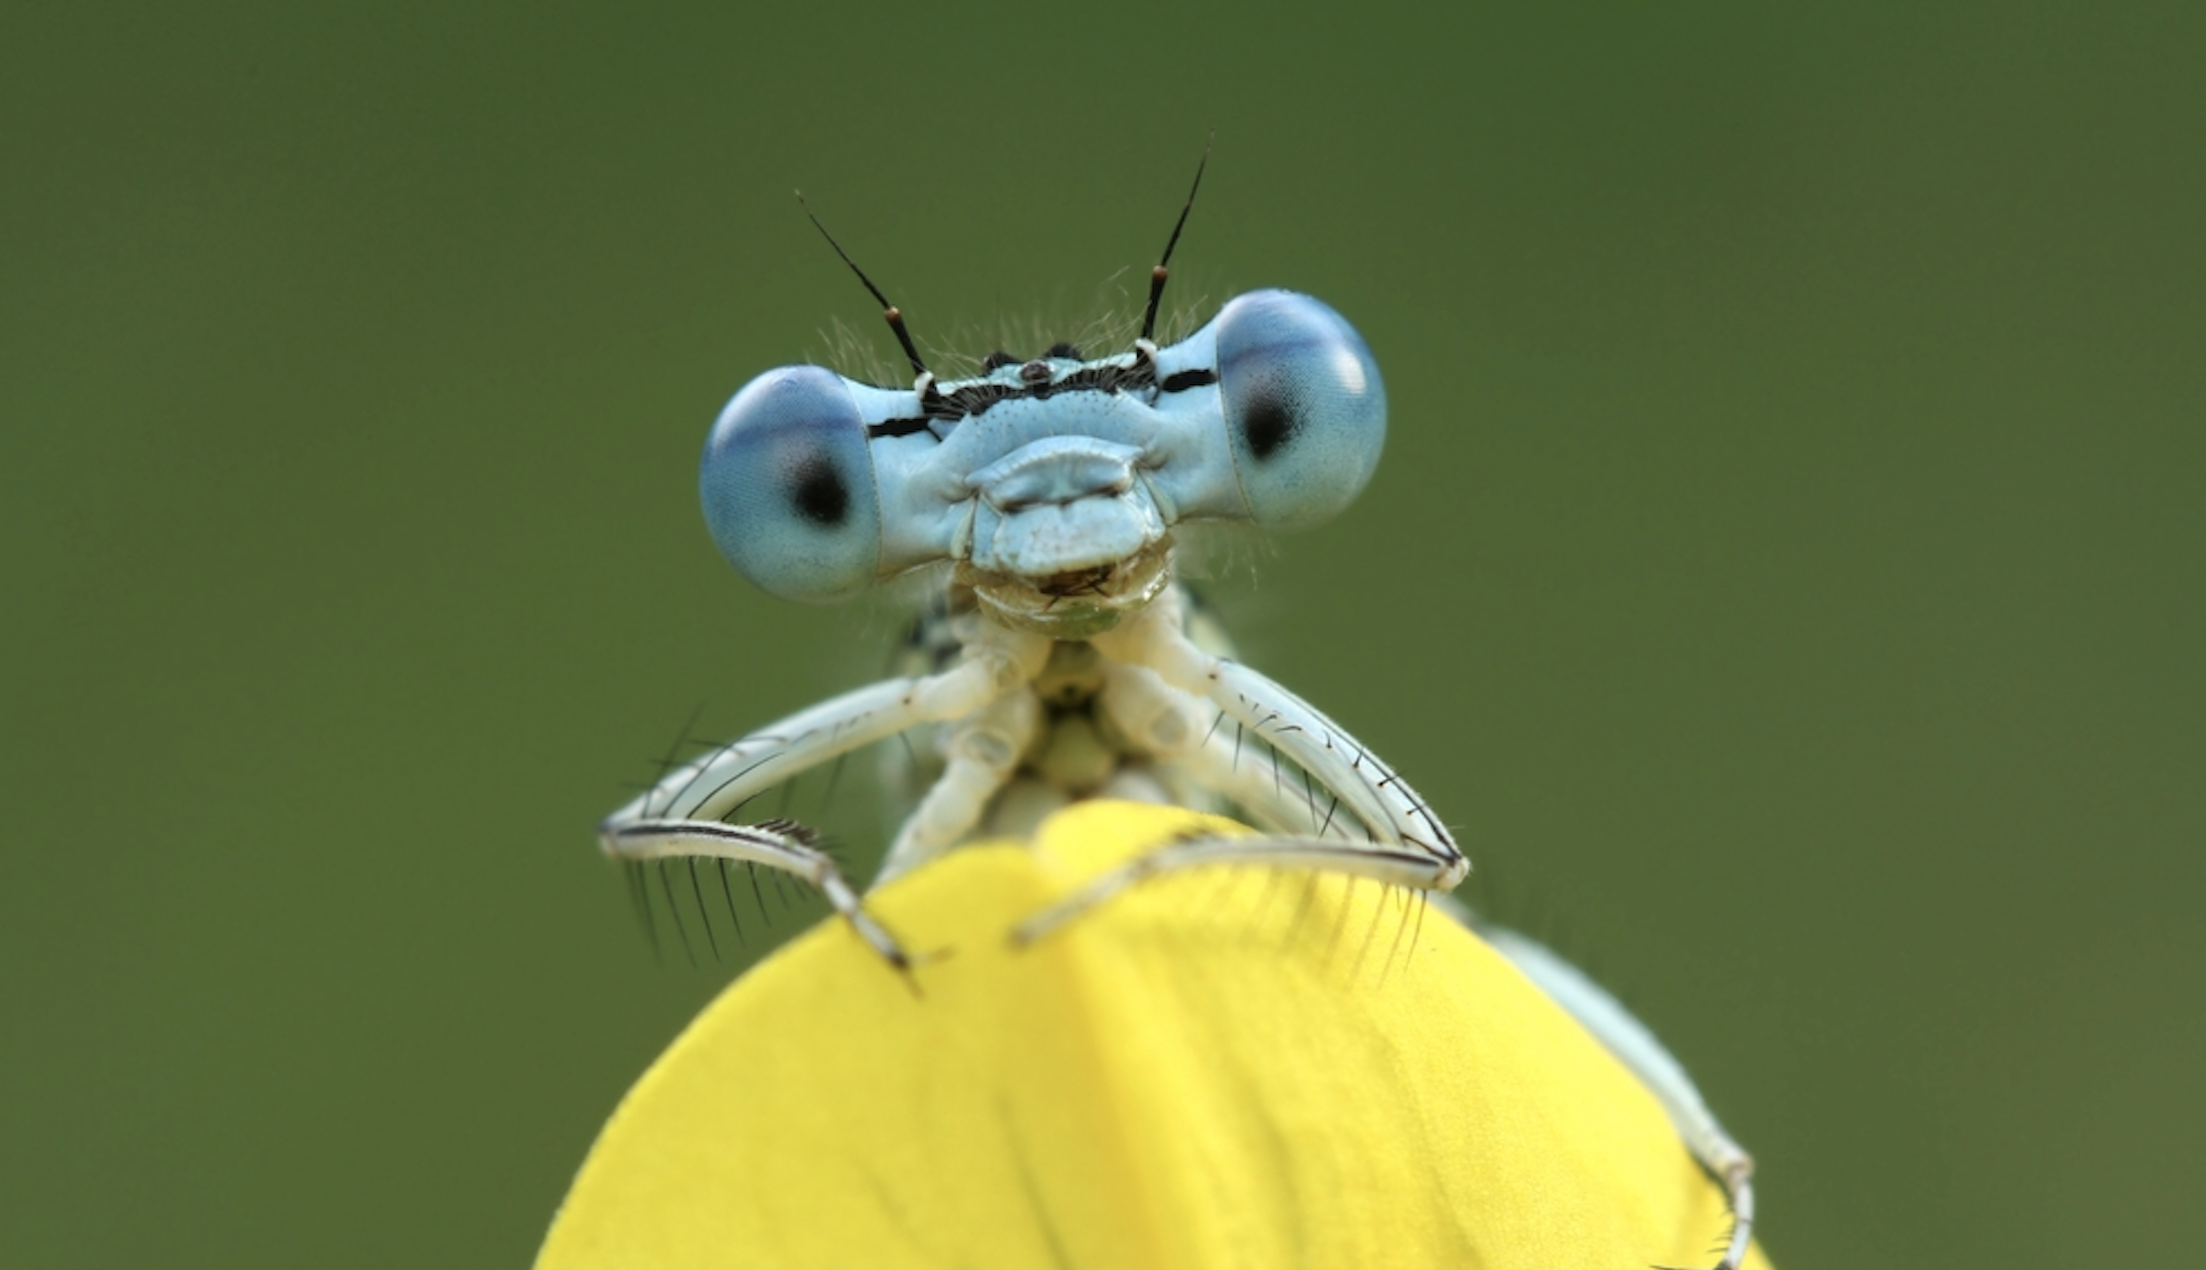 Disaster Interrupted How You Can Help Save The Insects